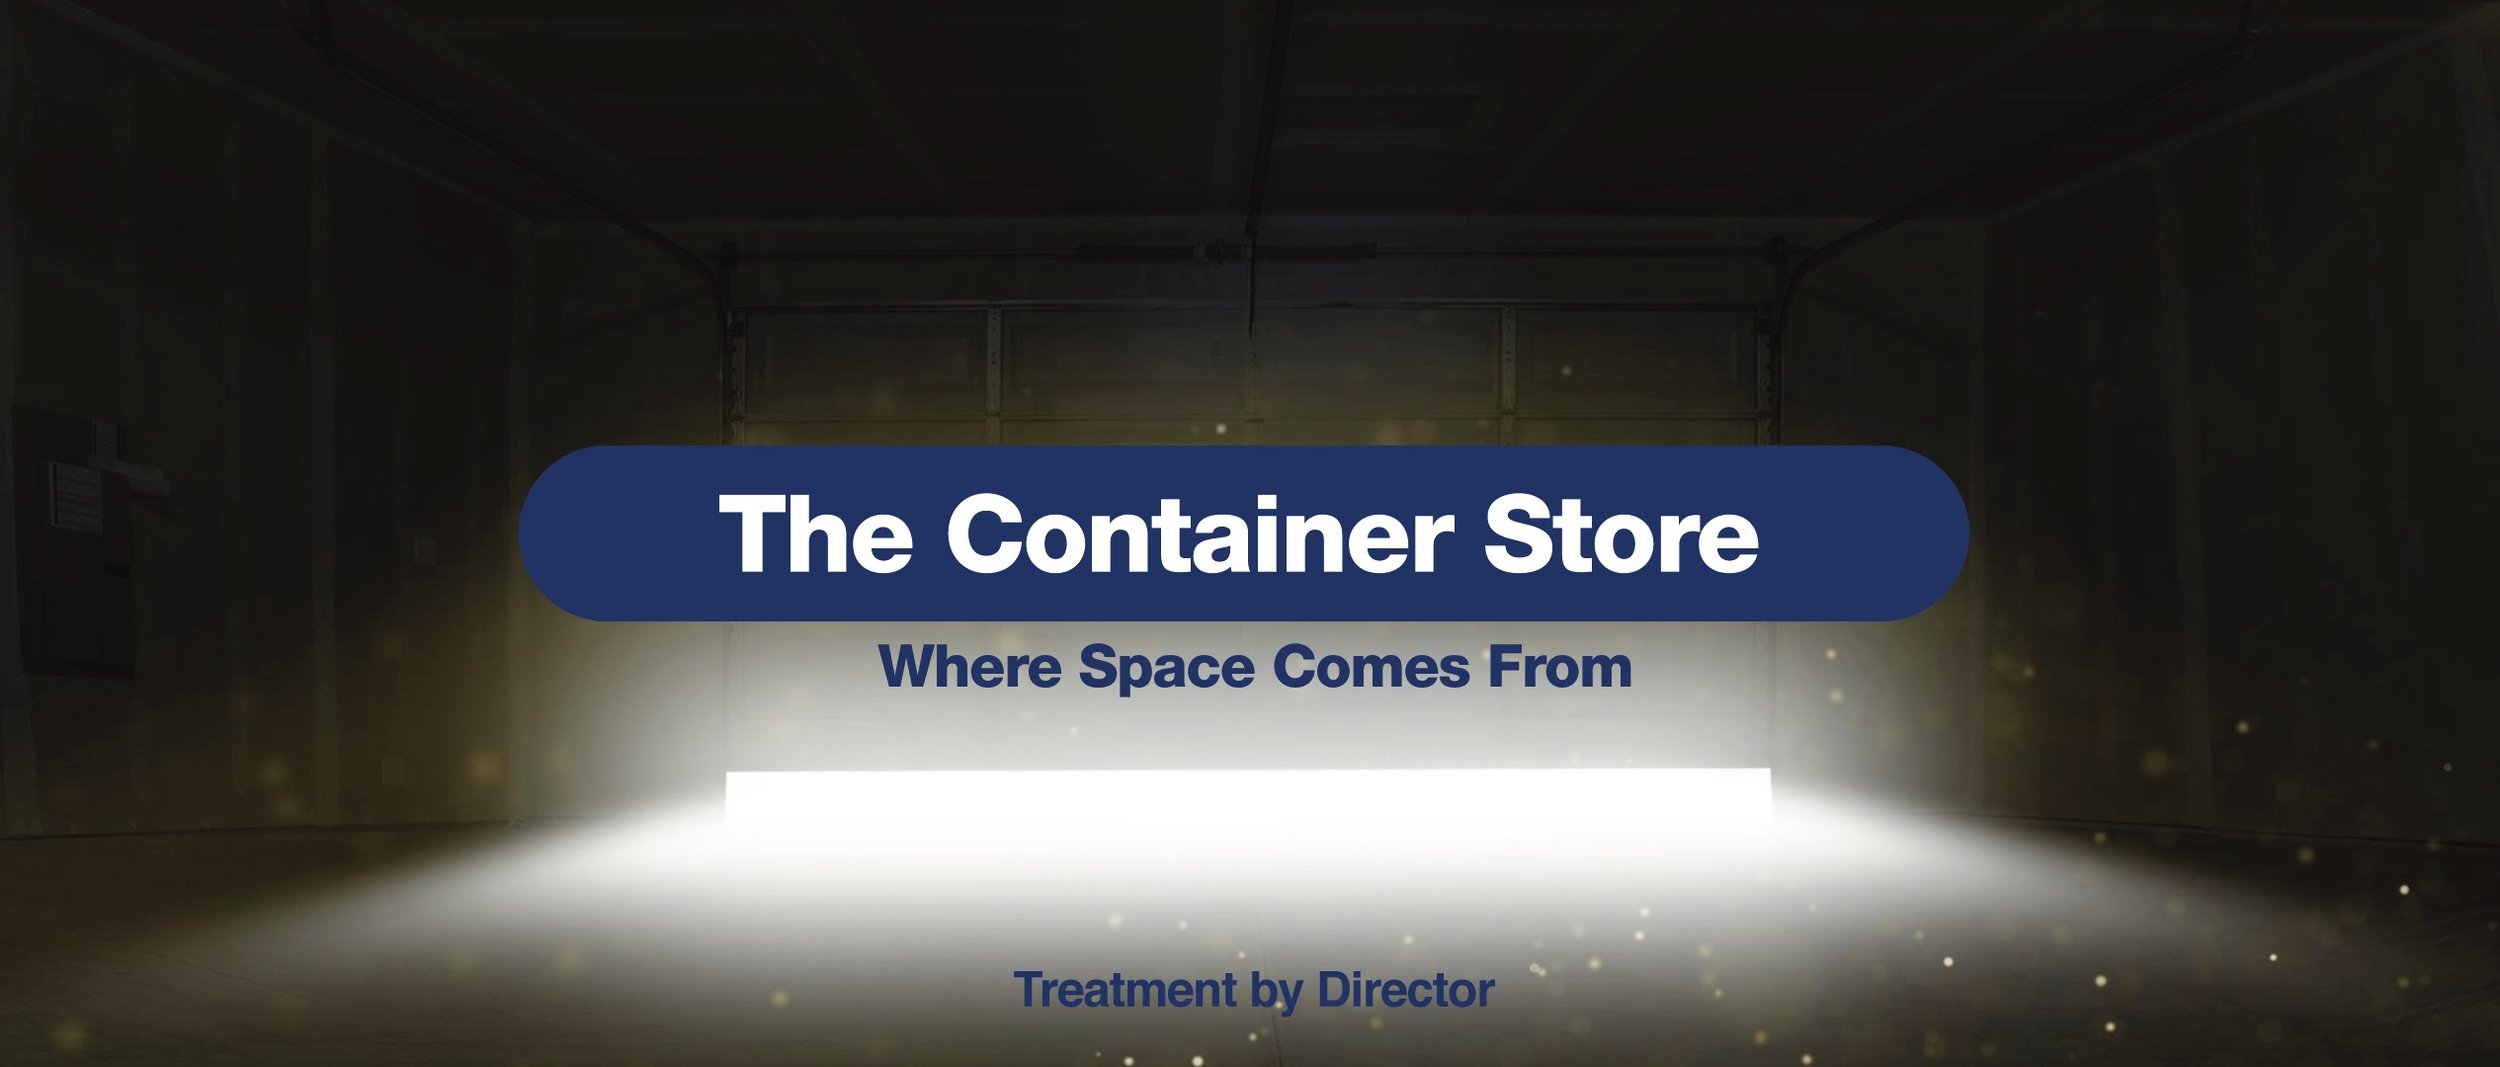 Betterment Society REN Container Store visuals sample 1.jpeg